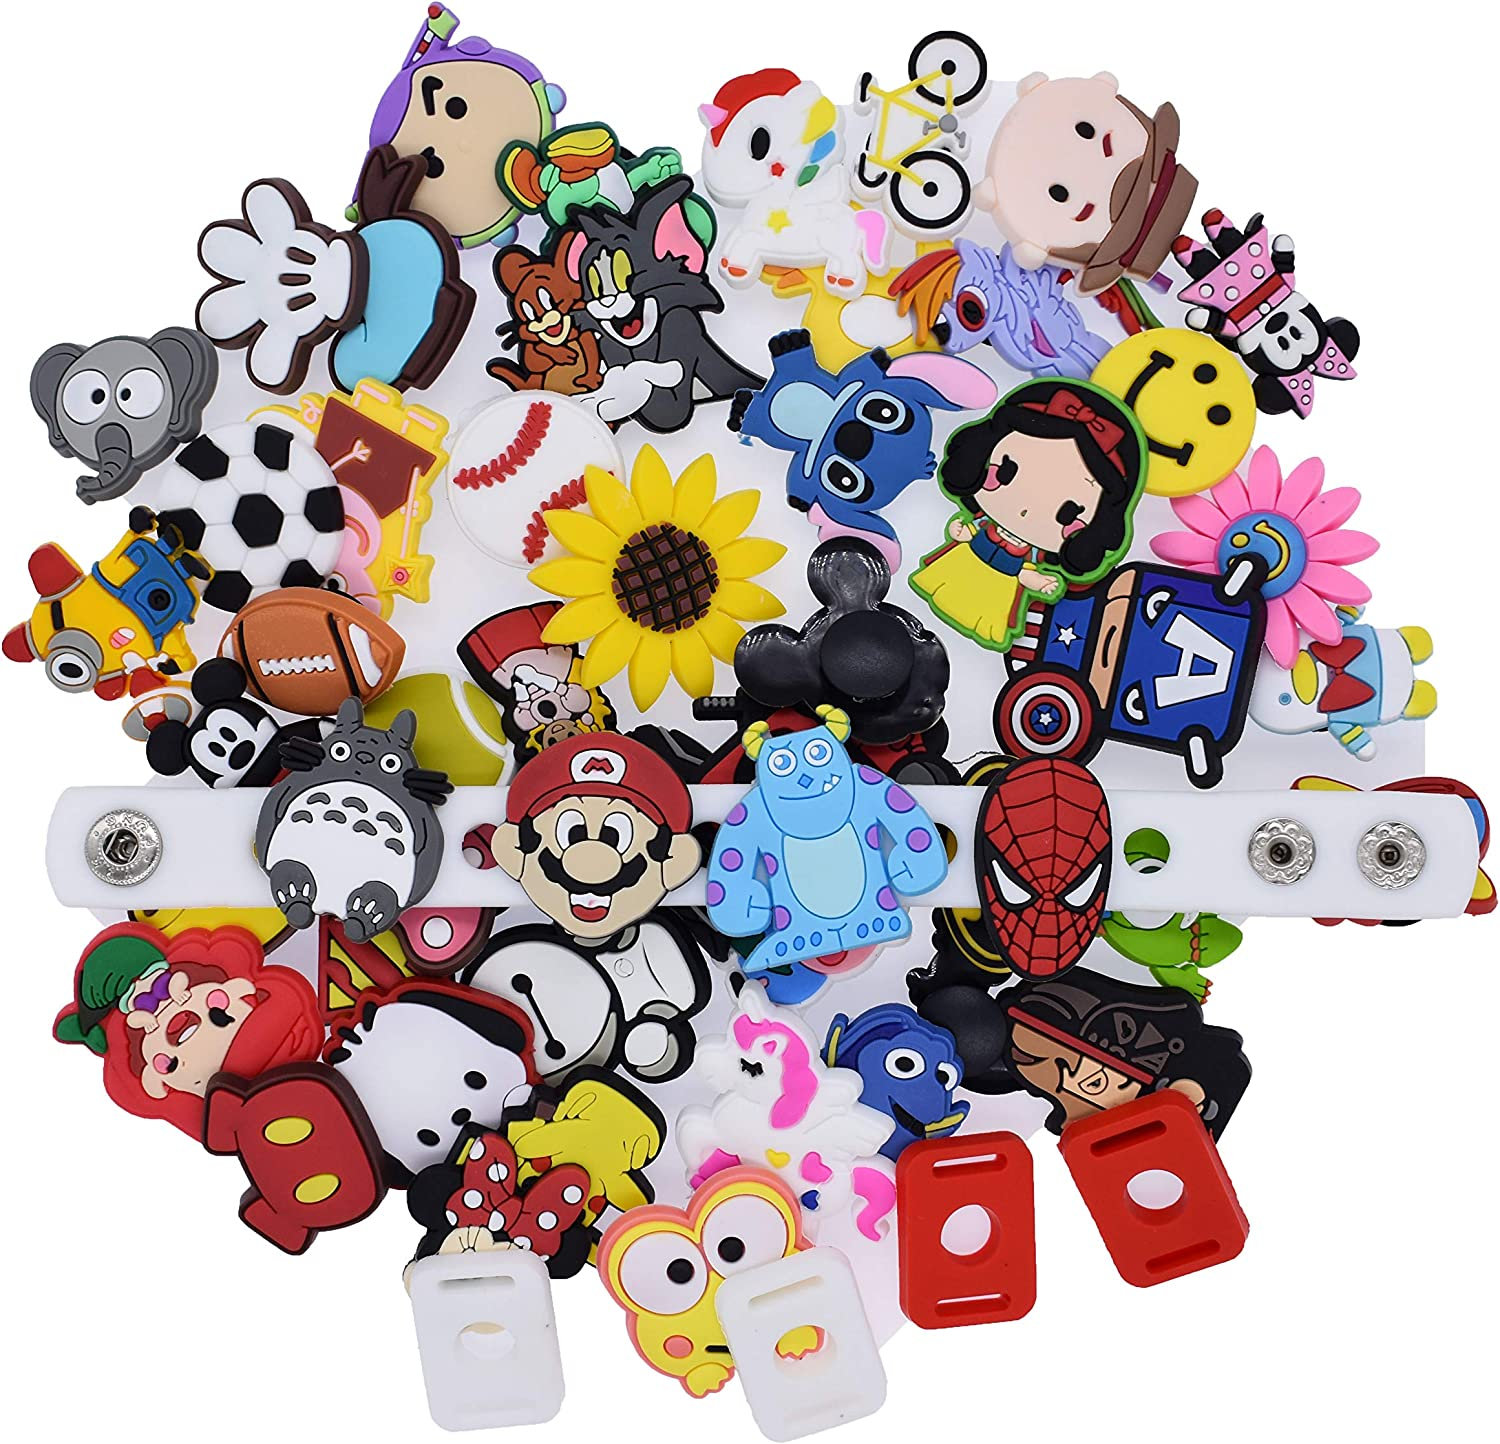 XHAOYEAHX 50,100pcs Different Random Shoes Charms Decorations with Shoe Lace Adapter & Wristband Bracelet Kids Gifts